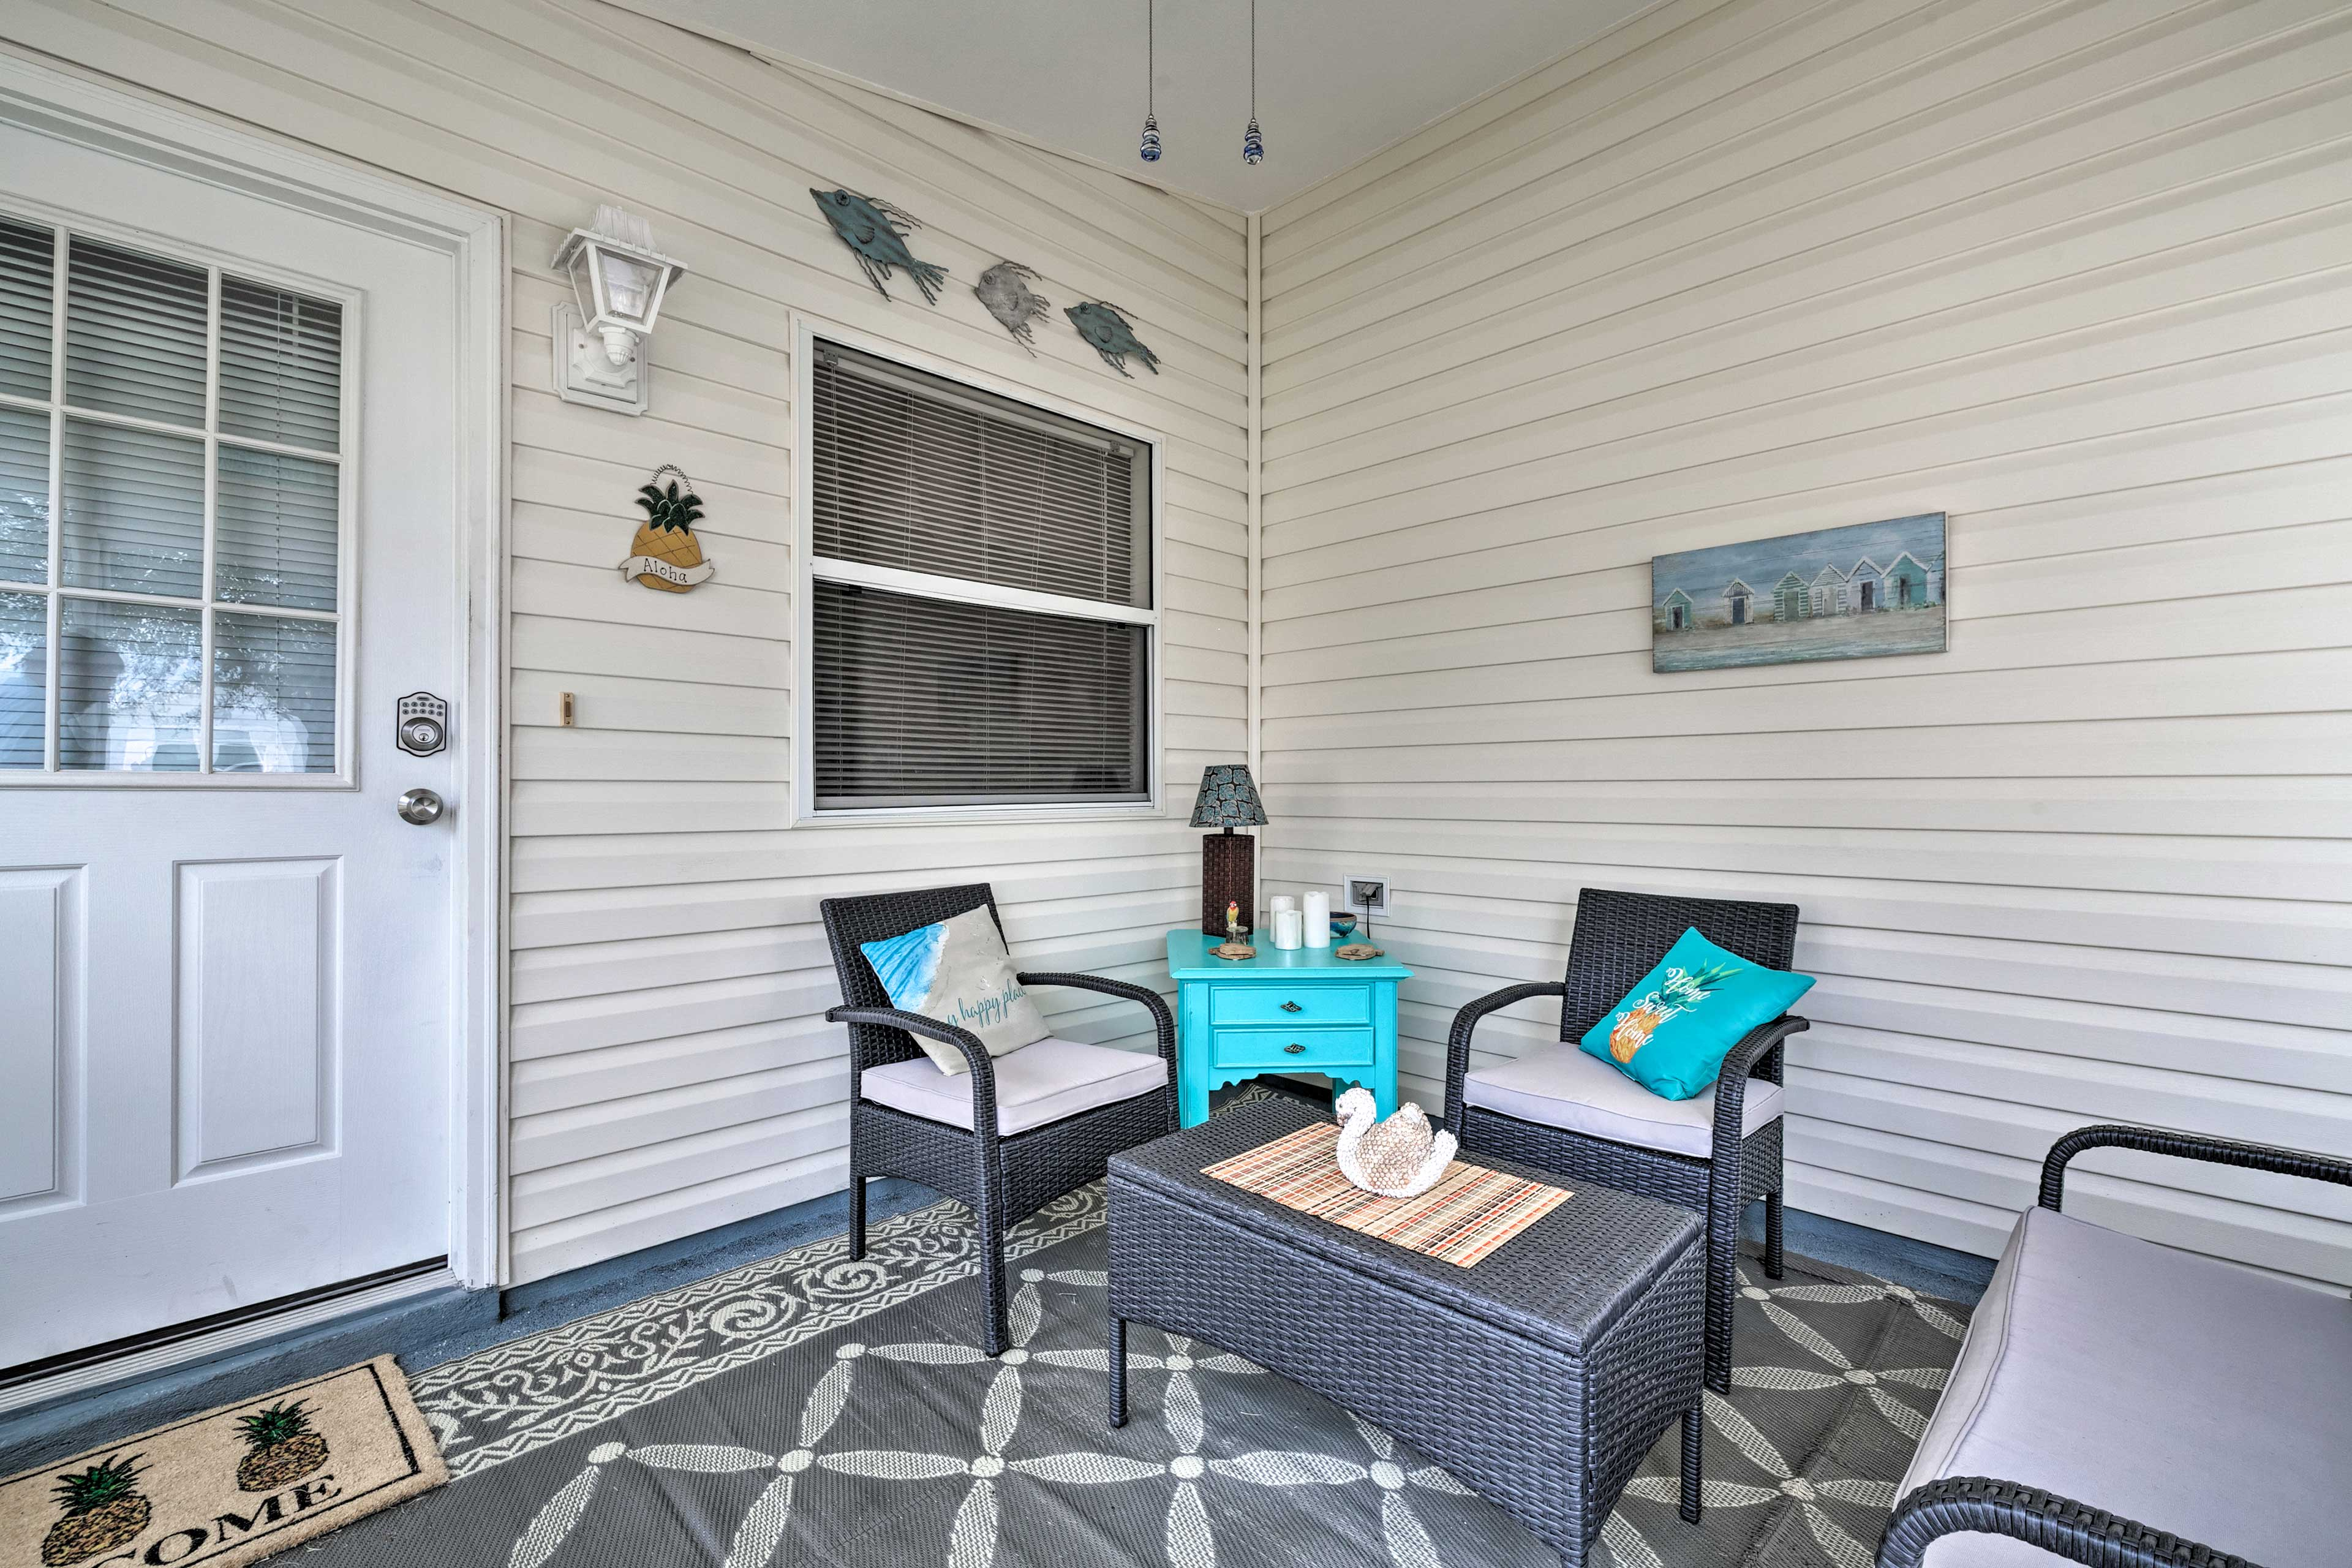 Enjoy a glass of wine and great conversation on your private screened-in lanai.